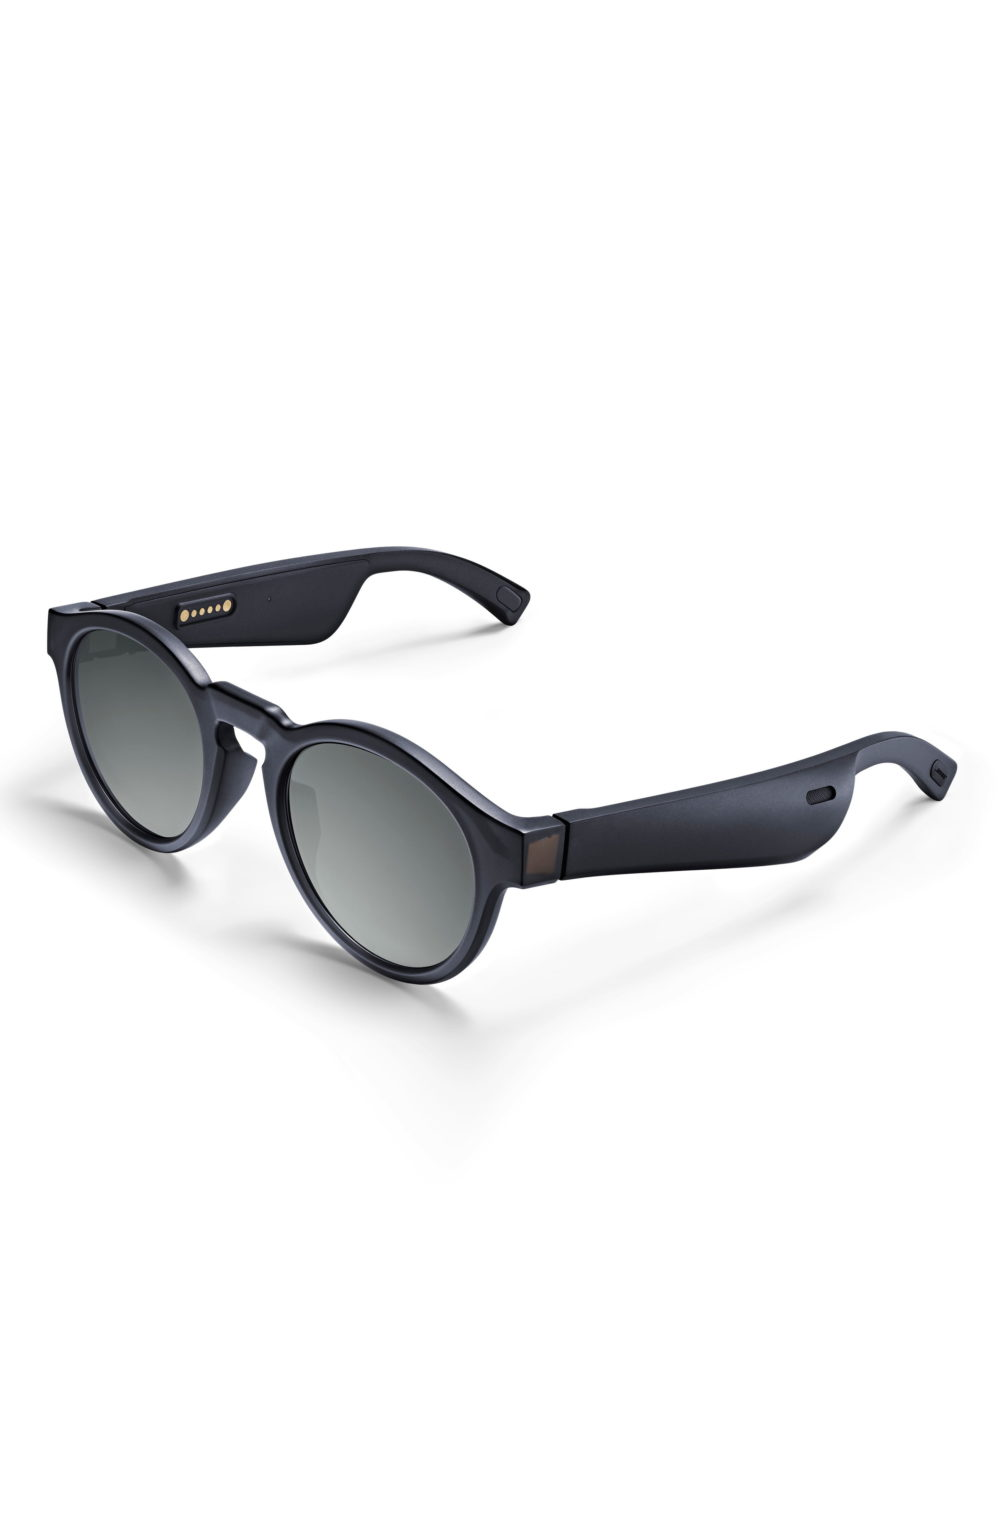 travel essentials audio sunglasses